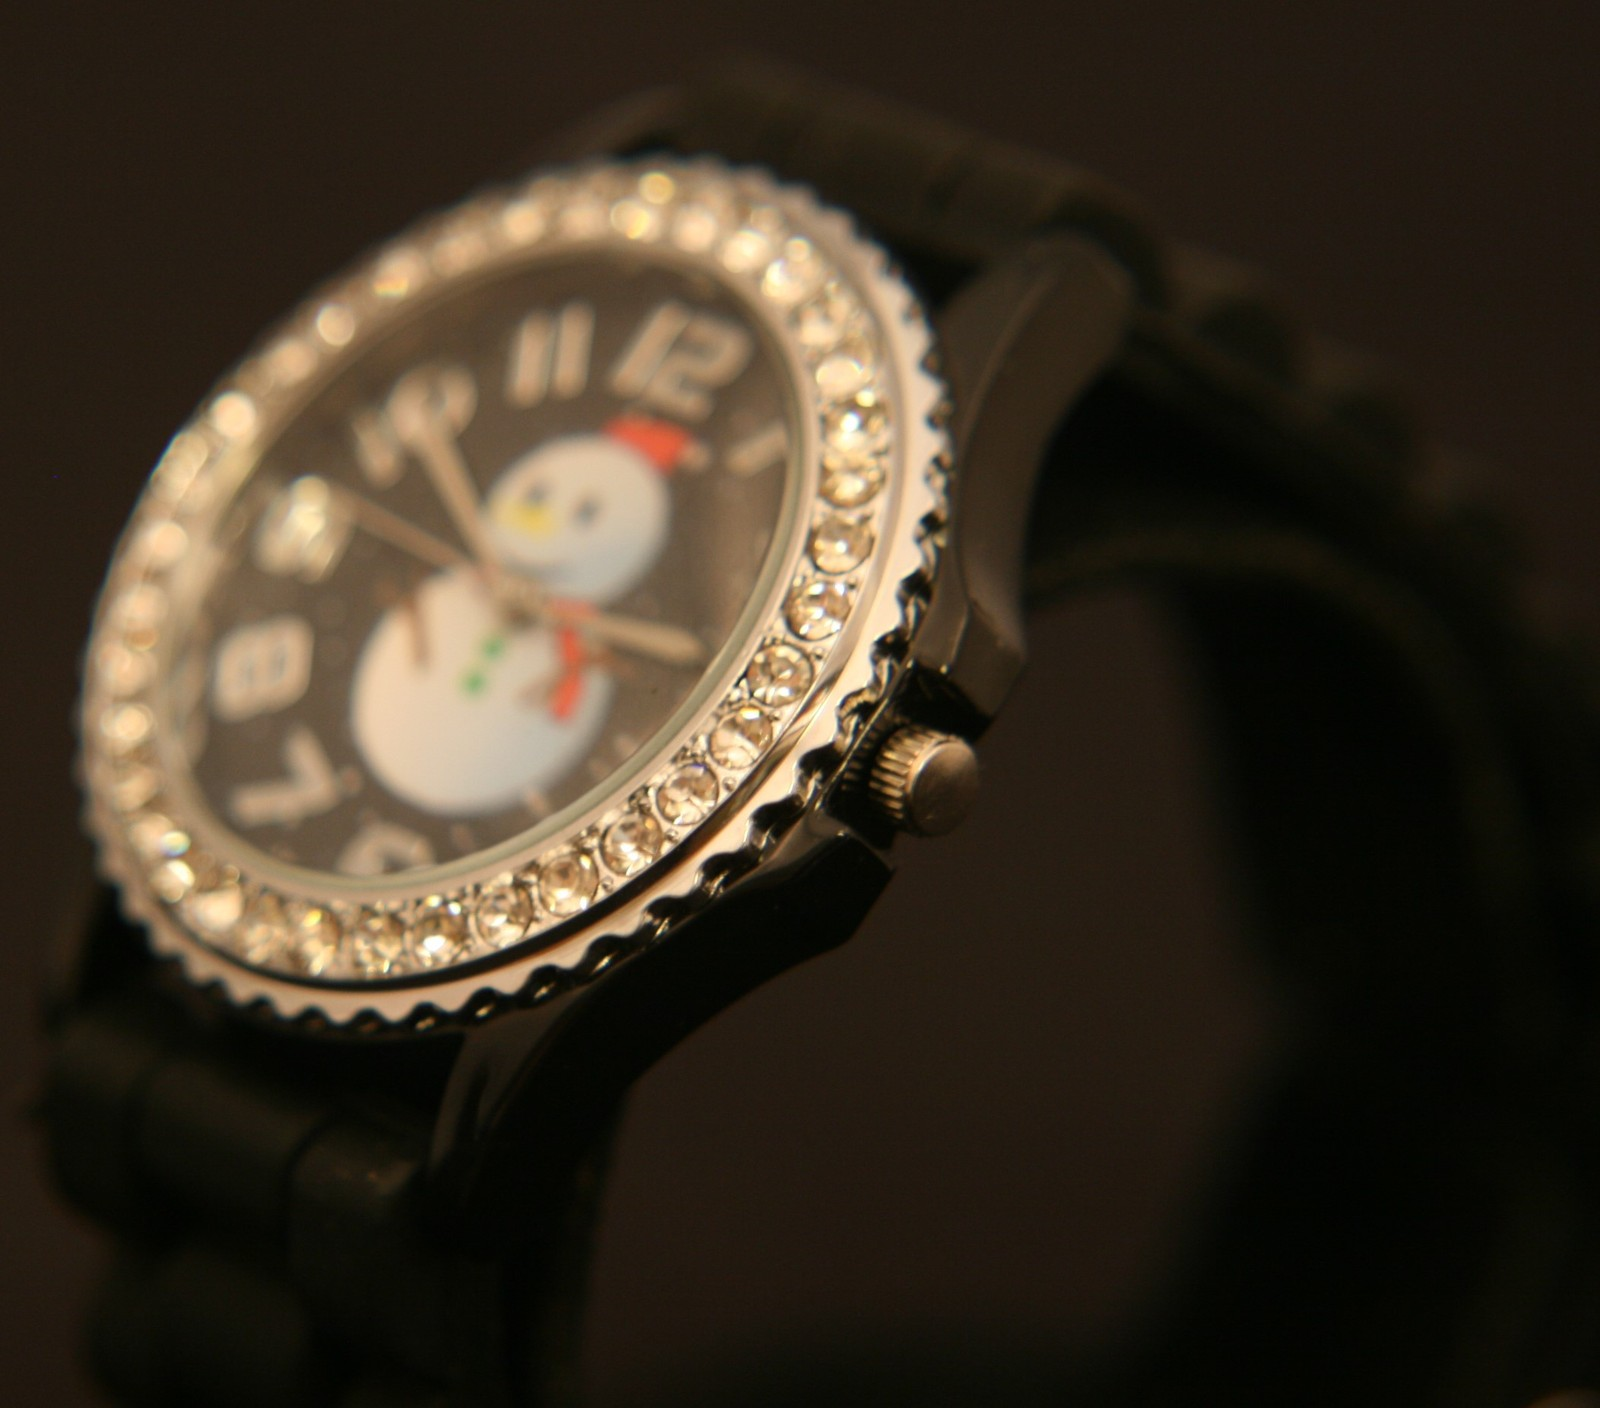 Get ready for Christmas with this delightful new Santa Claus quartz wristwatch.